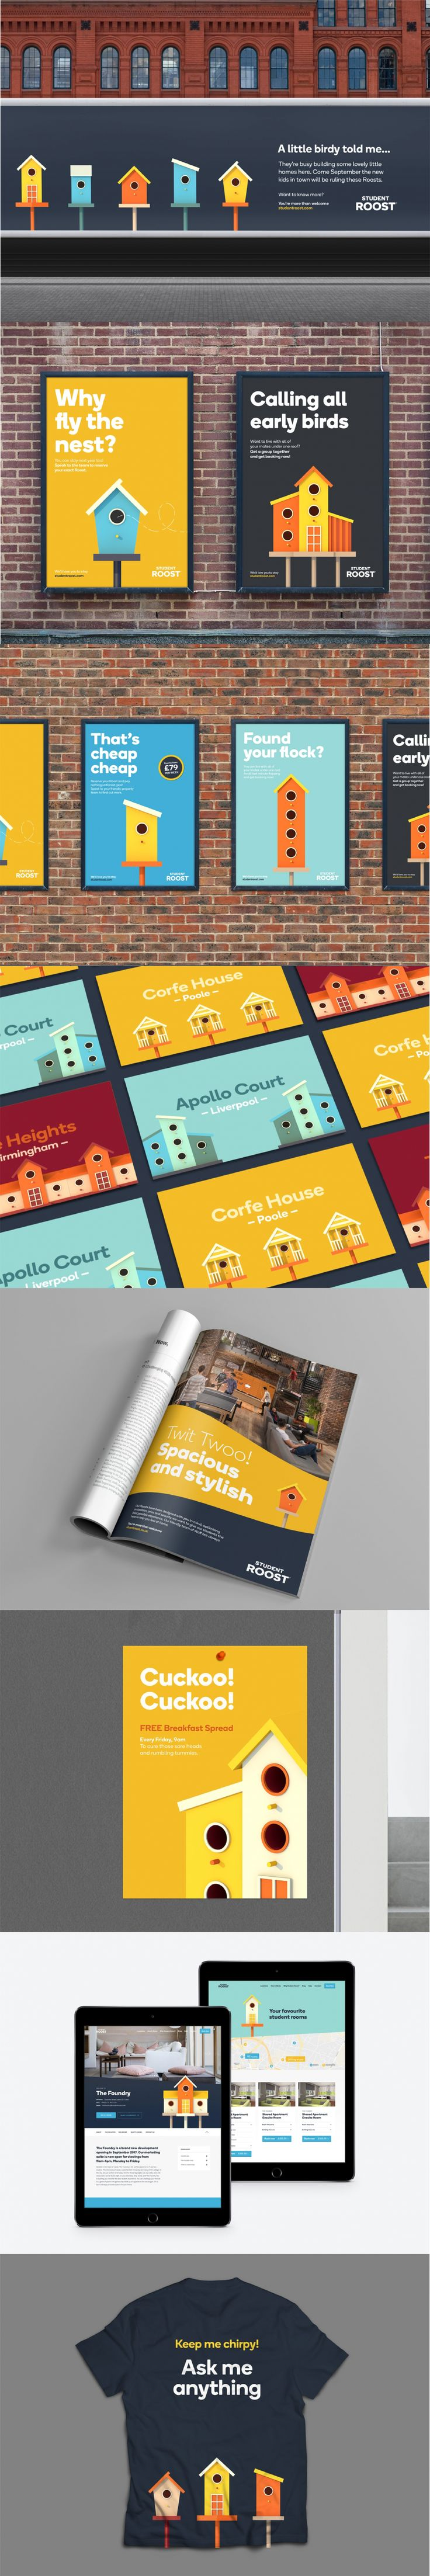 SomeOne brings students home to Roost with bright and upbeat branding  Written by Laura Collinson